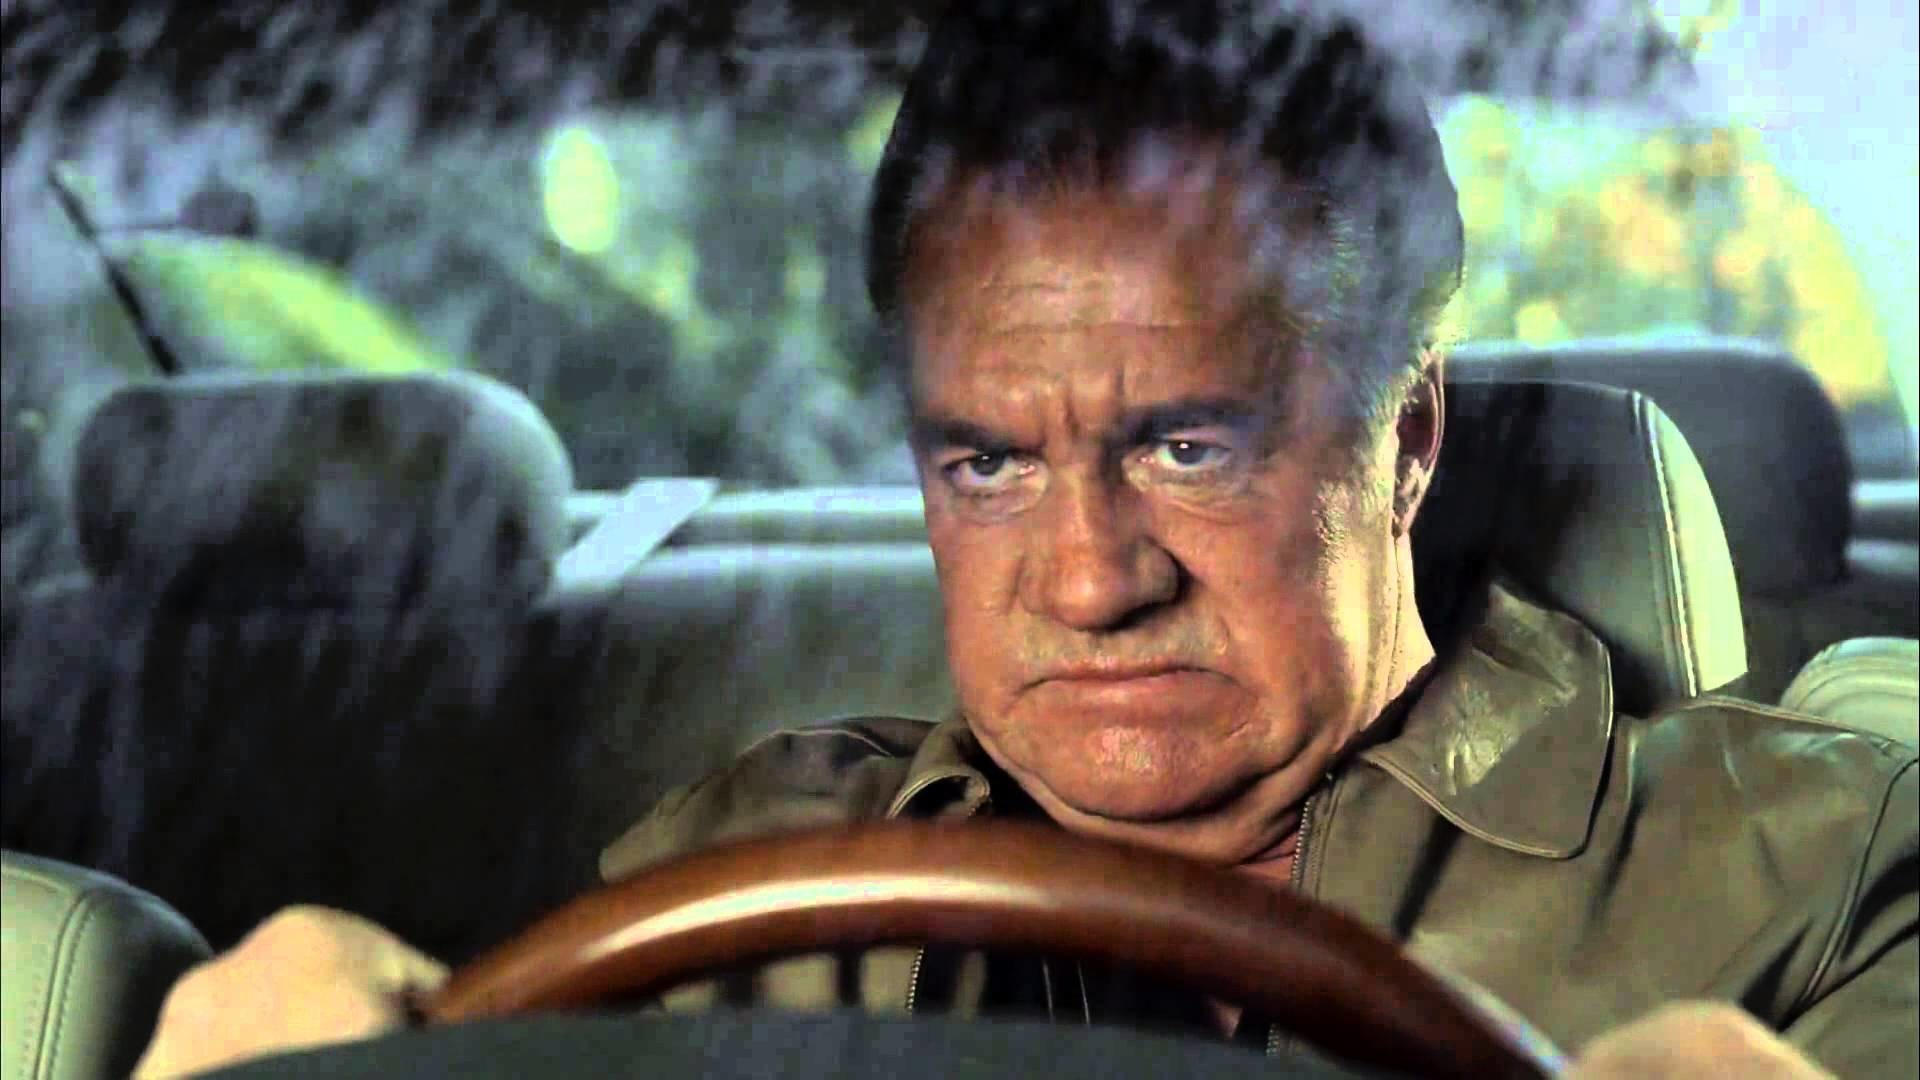 Res: 1920x1080, The Sopranos:RARE FOOTAGE - Paul Walnuts Driving While Listening to His  Favourite Frank Sinatra Song - YouTube